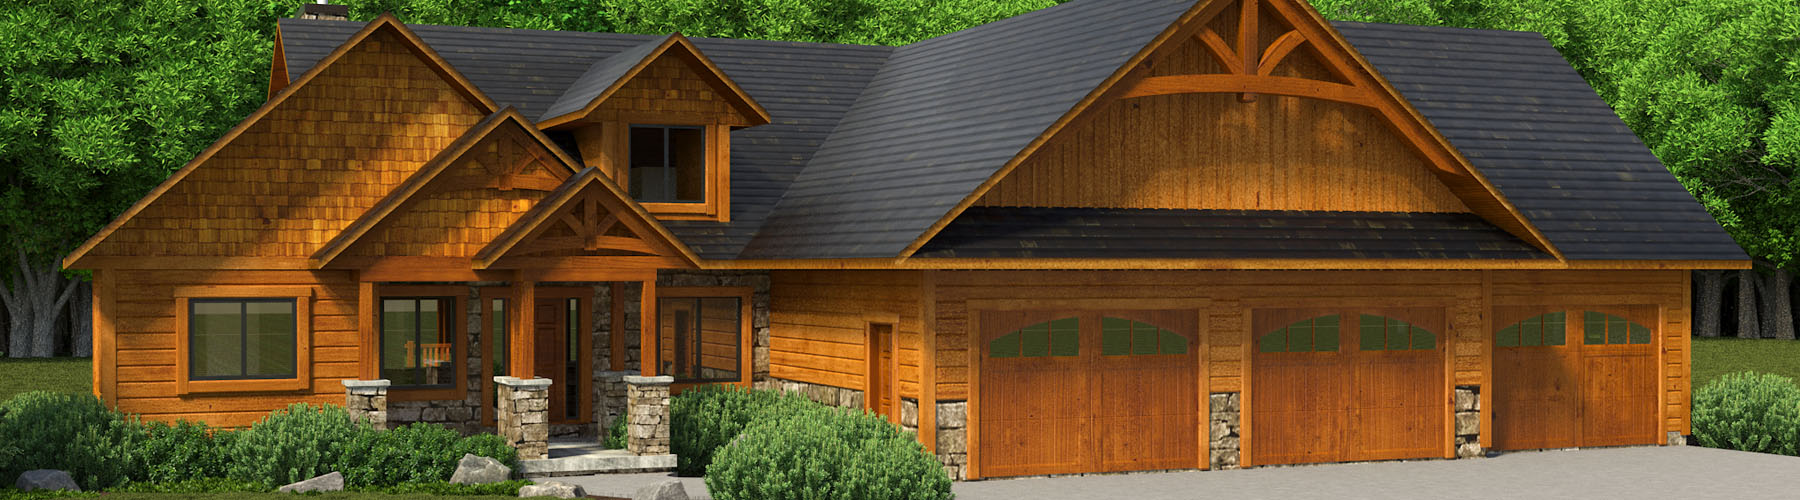 Timber Accent Home 2609AR-UCT Ranch Ultra Custom Timber